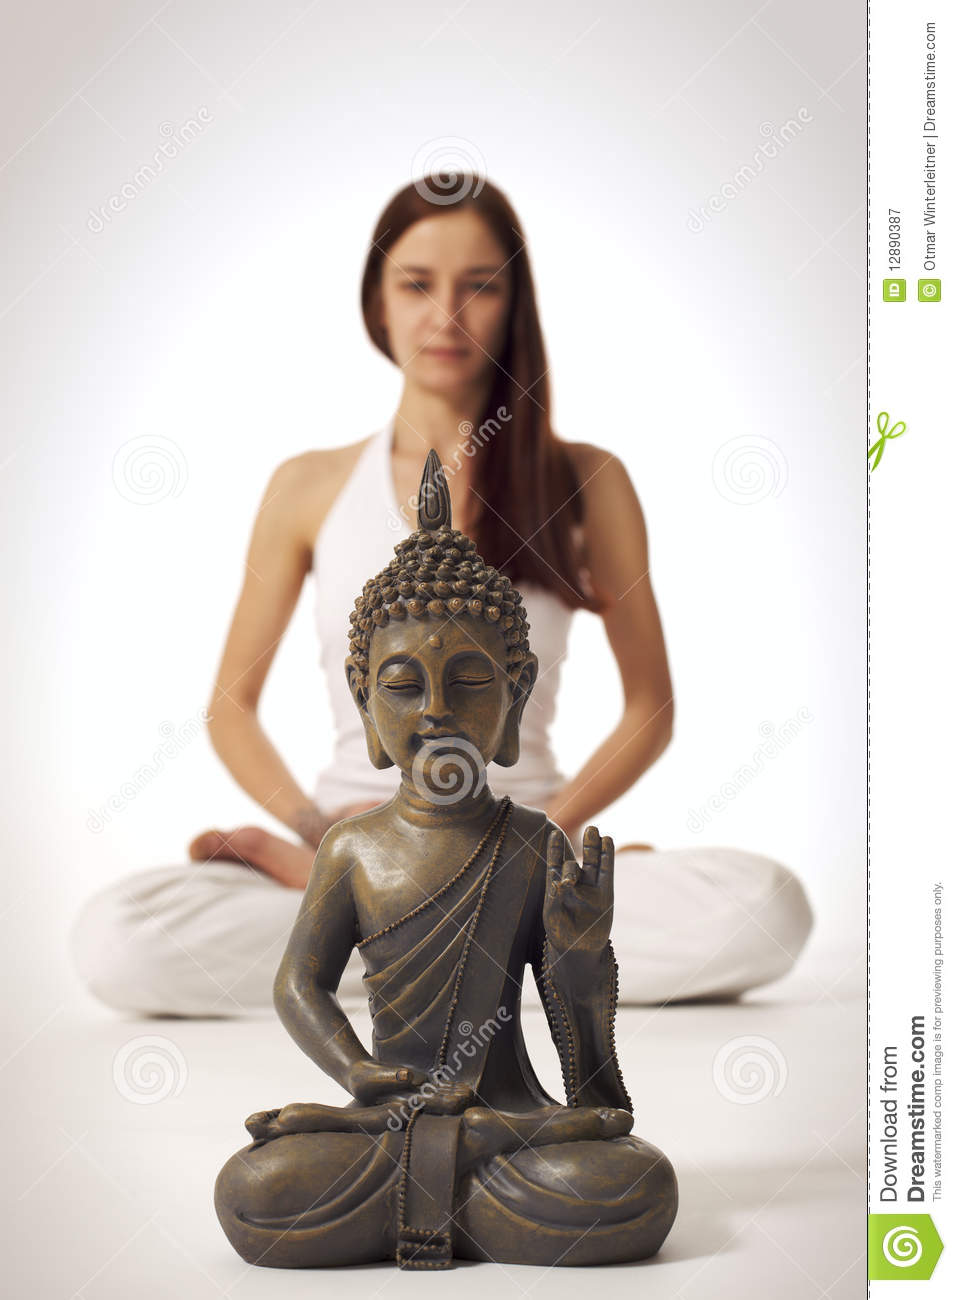 kingfisher buddhist single women Meet buddhist thai singles there are 1000's of profiles to view for free at thaicupidcom - join today.